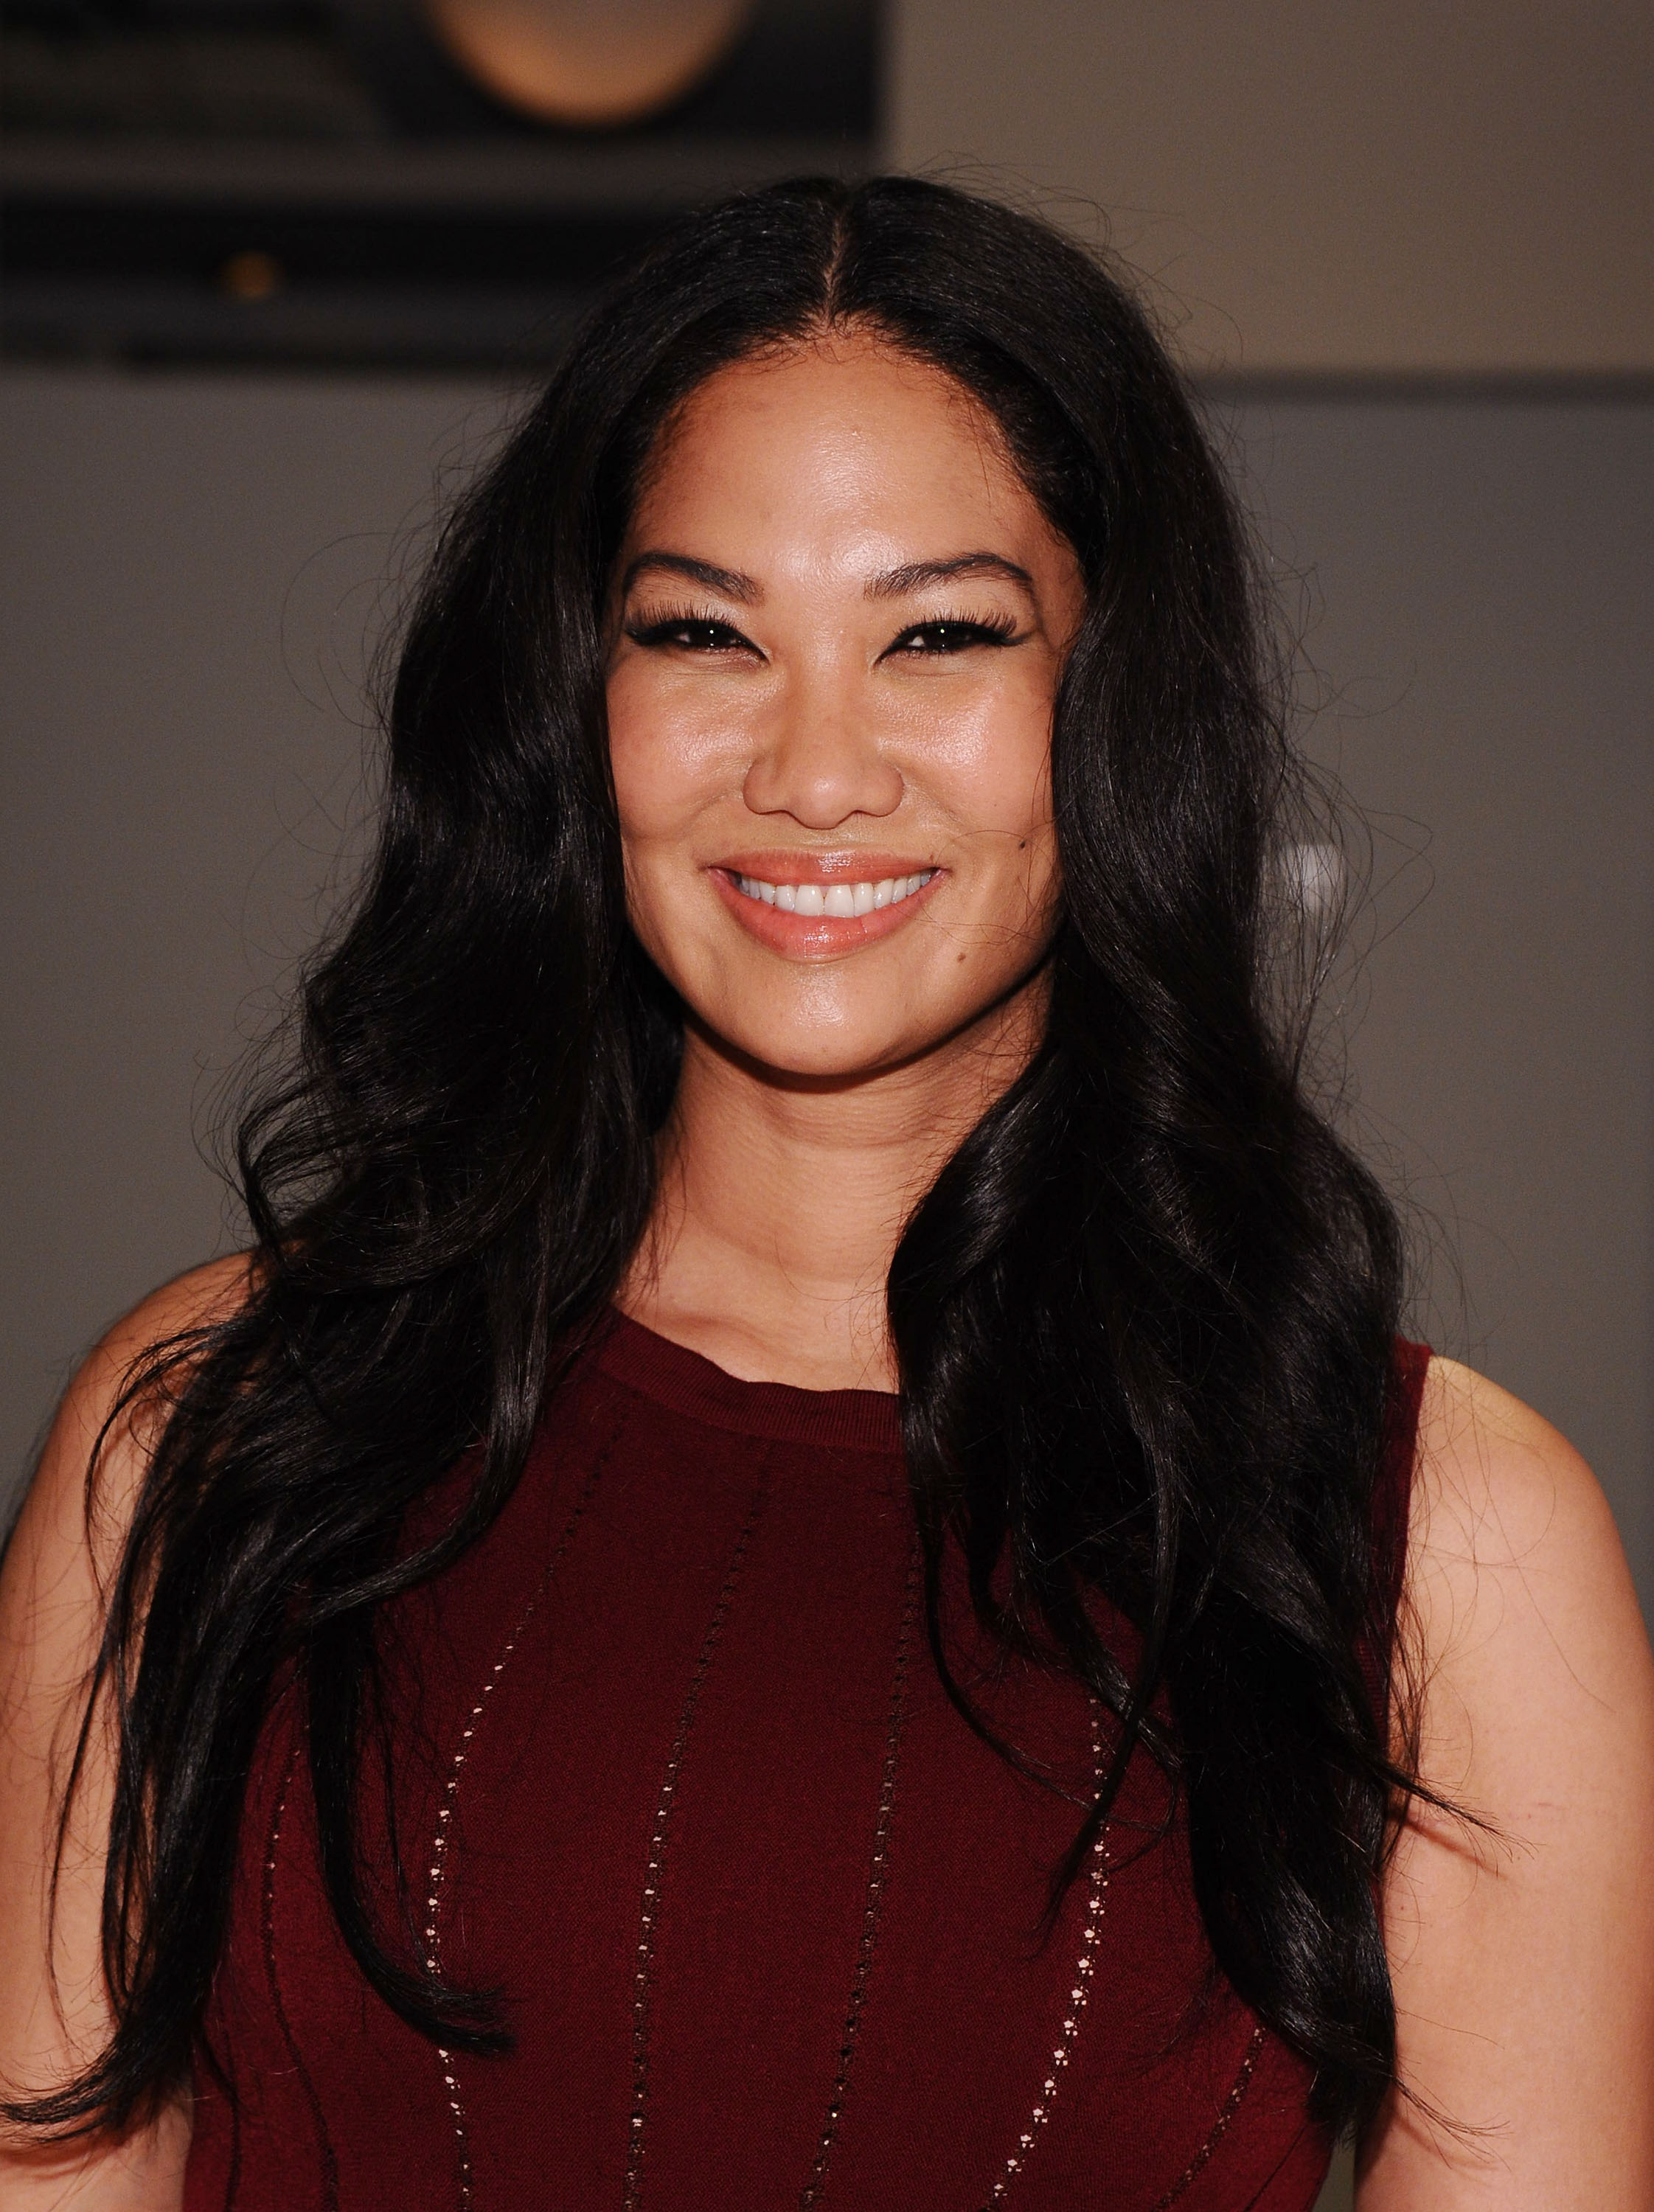 Kimora Lee Simmons at the Mercedes-Benz Fashion Week Spring 2015 at Helen Mills Event Space on September 5, 2014 in New York City. | Source: Getty Images